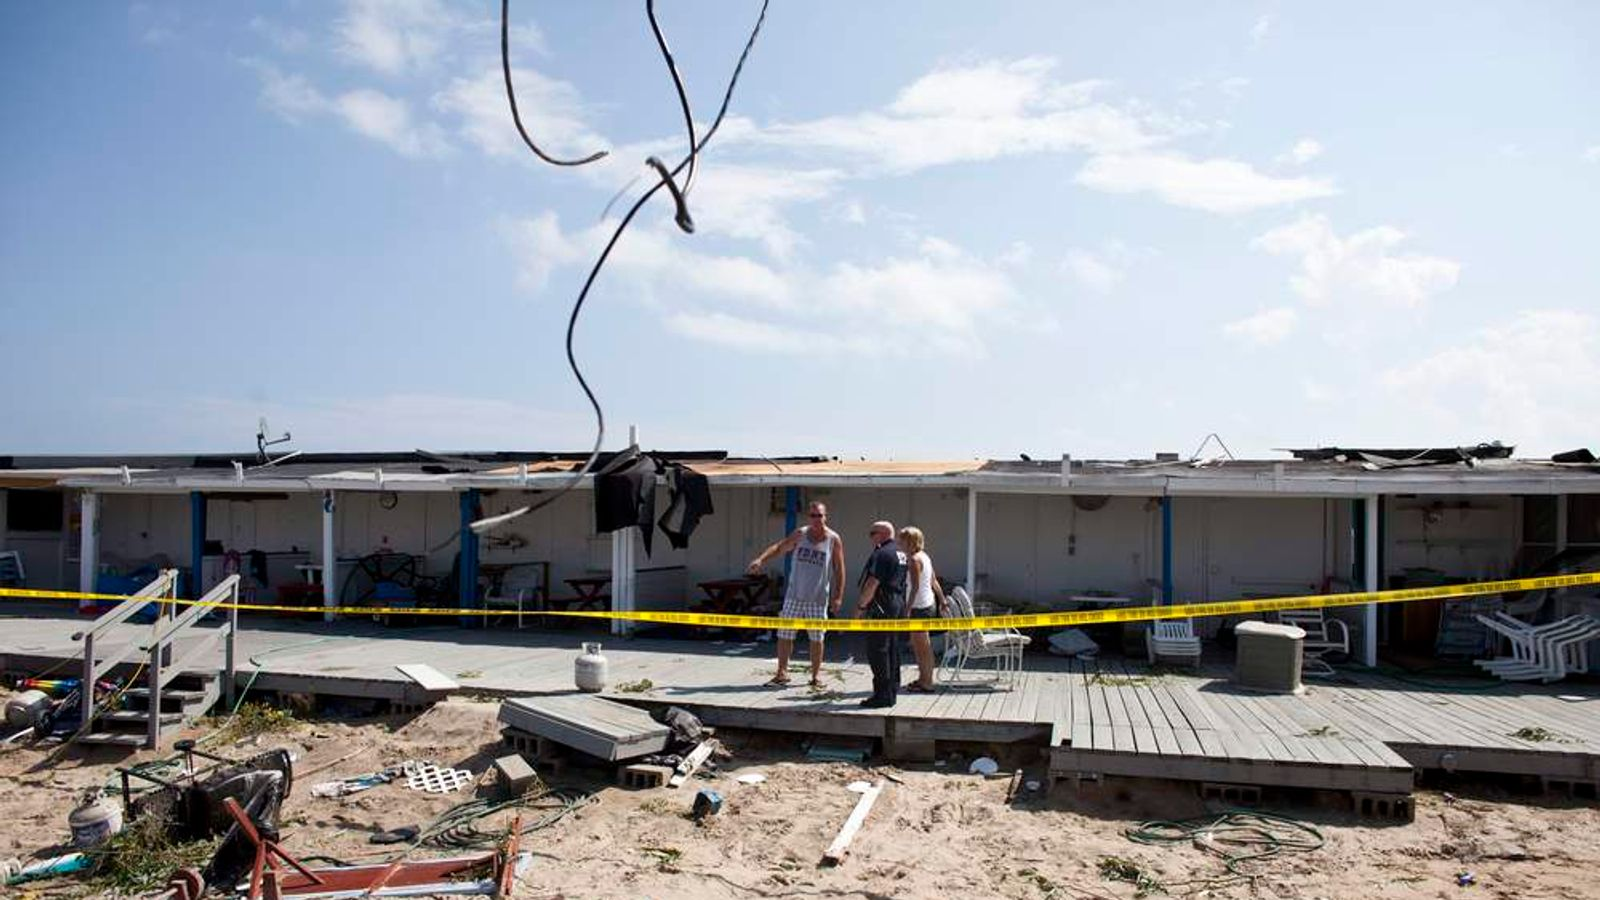 Tornado strikes beachfront neighborhood in NYC